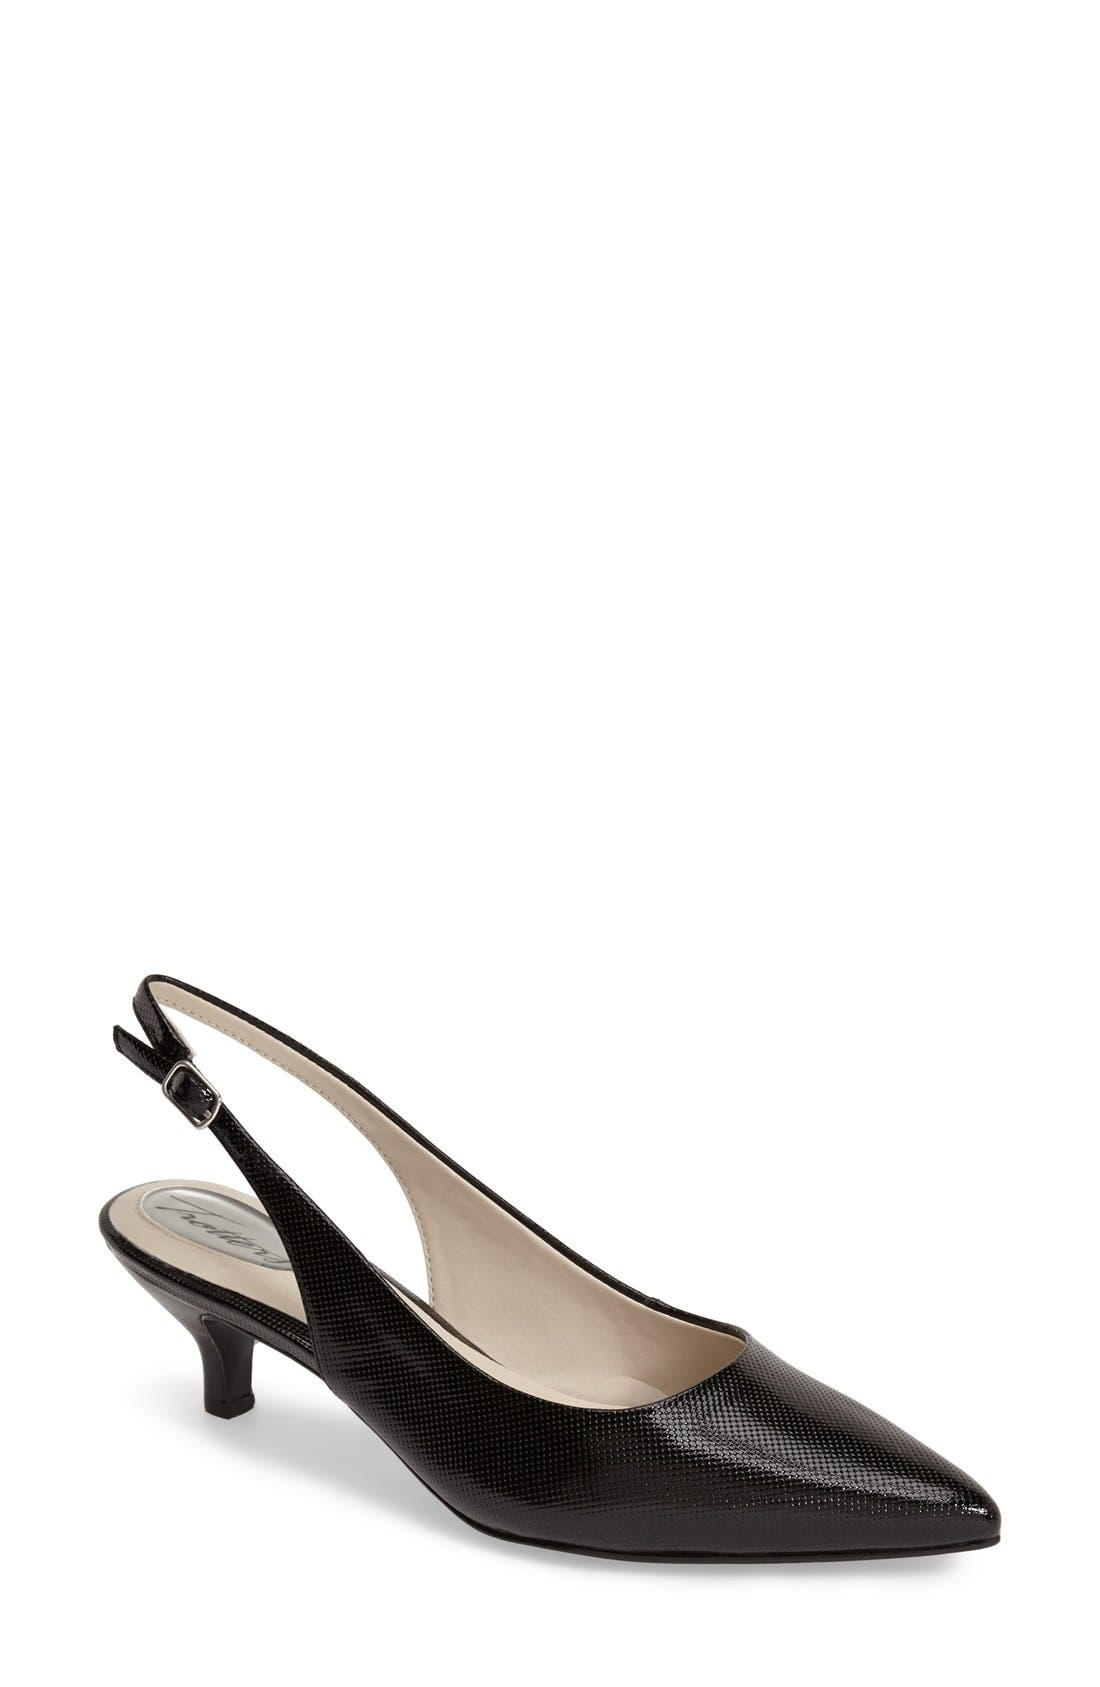 'Prima' Pump,                             Main thumbnail 1, color,                             BLACK